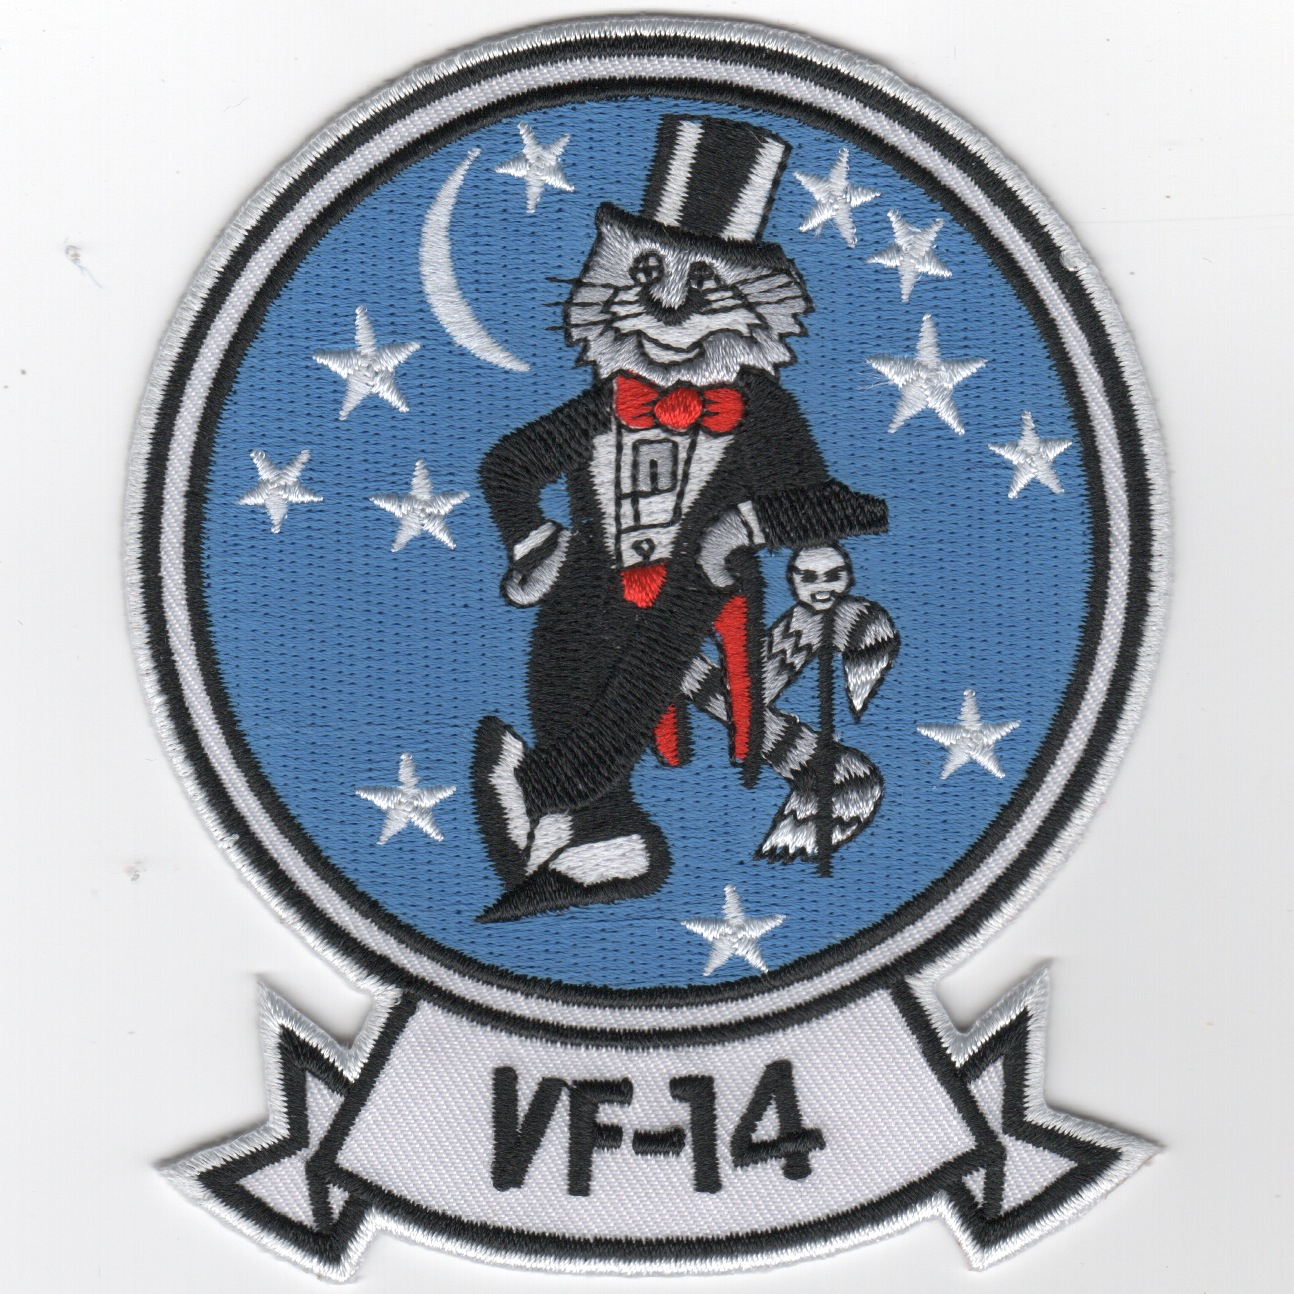 VF-14 Squadron Patch (Old Style)